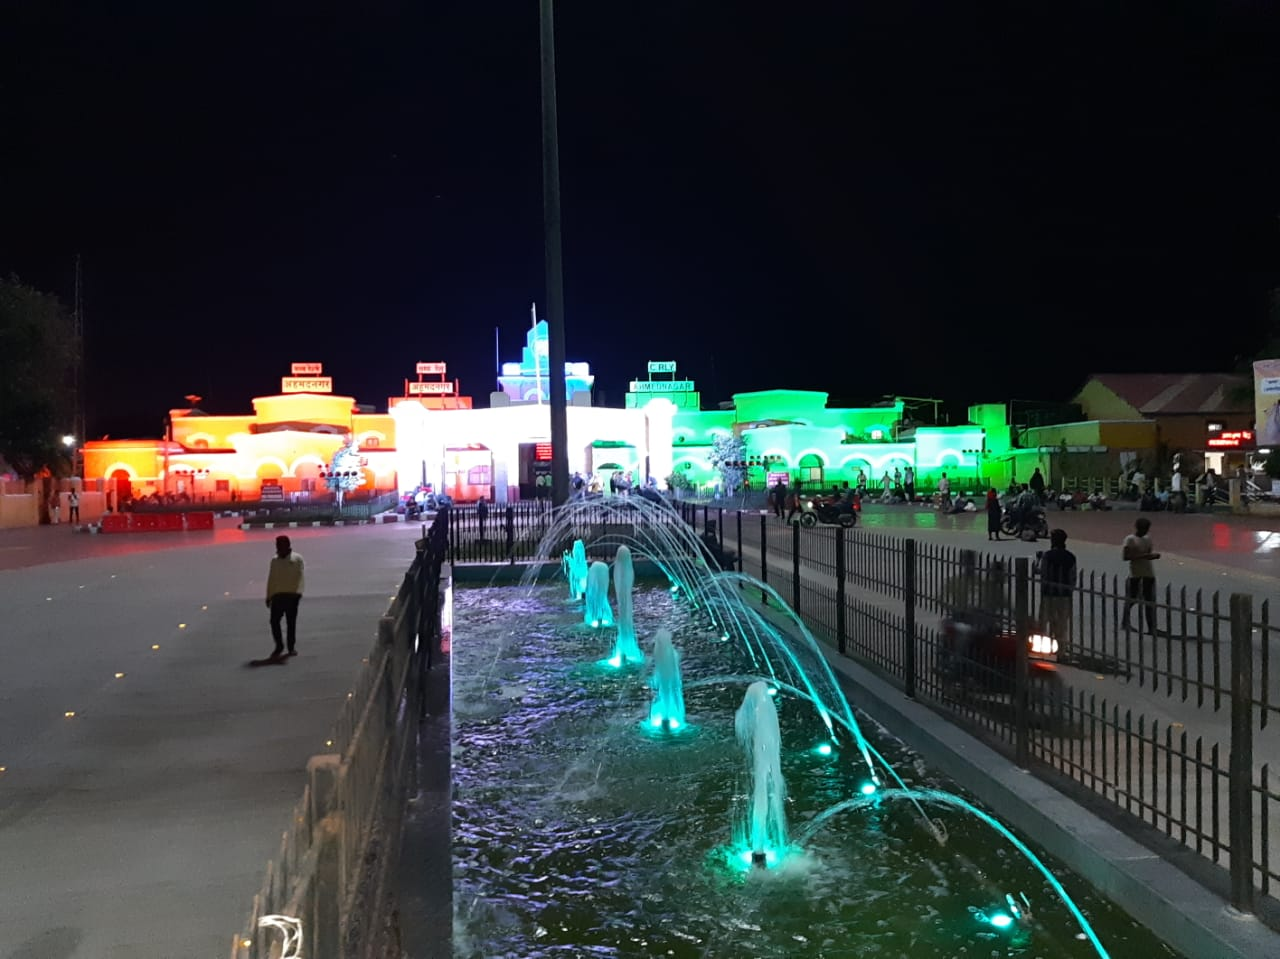 Ahmednagar Station lit up for Independence Day. Photo courtesy: Twitter/@Central_Railway